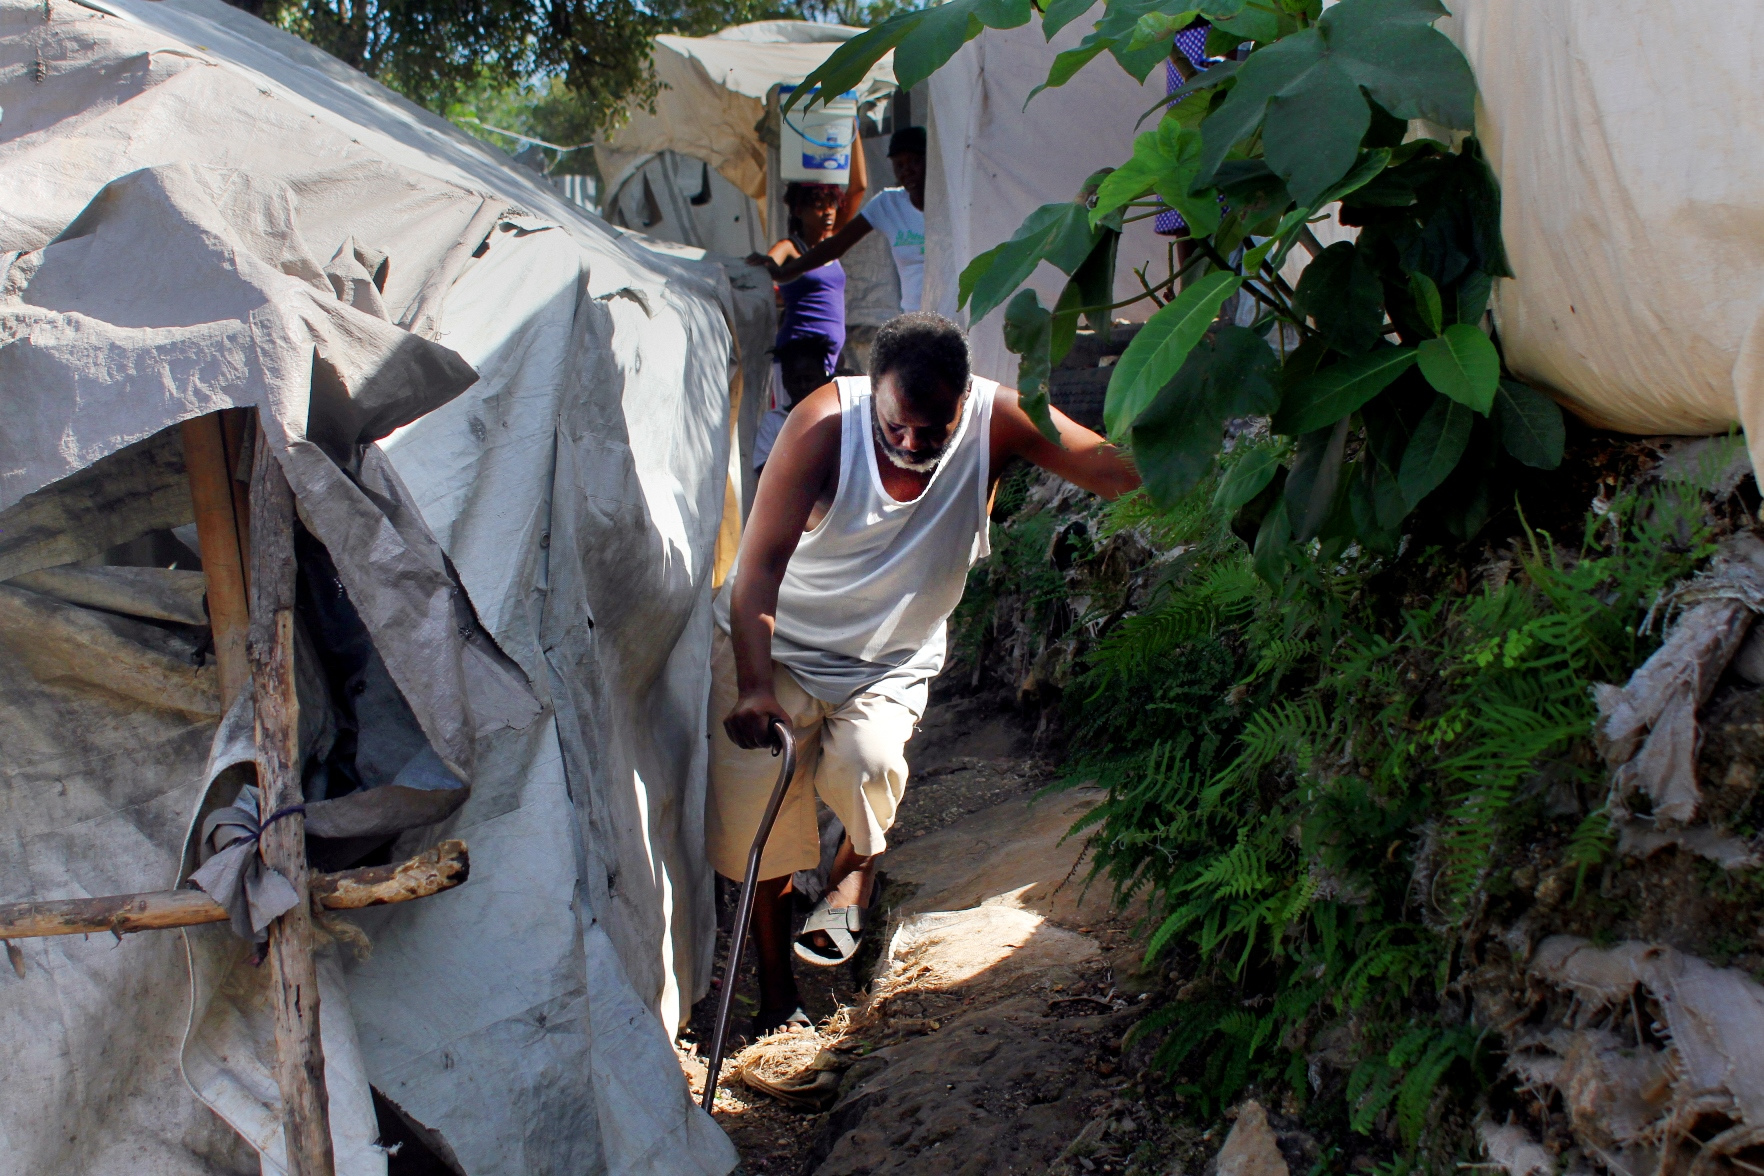 Charles Ivalien, 52, makes his way through the narrow, hillside paths of the Acra 2 camp in the Pétion-Ville commune of Port-au-Prince. The International Organization for Migration is in the process of clearing the camp, one of 271 still open since the 2